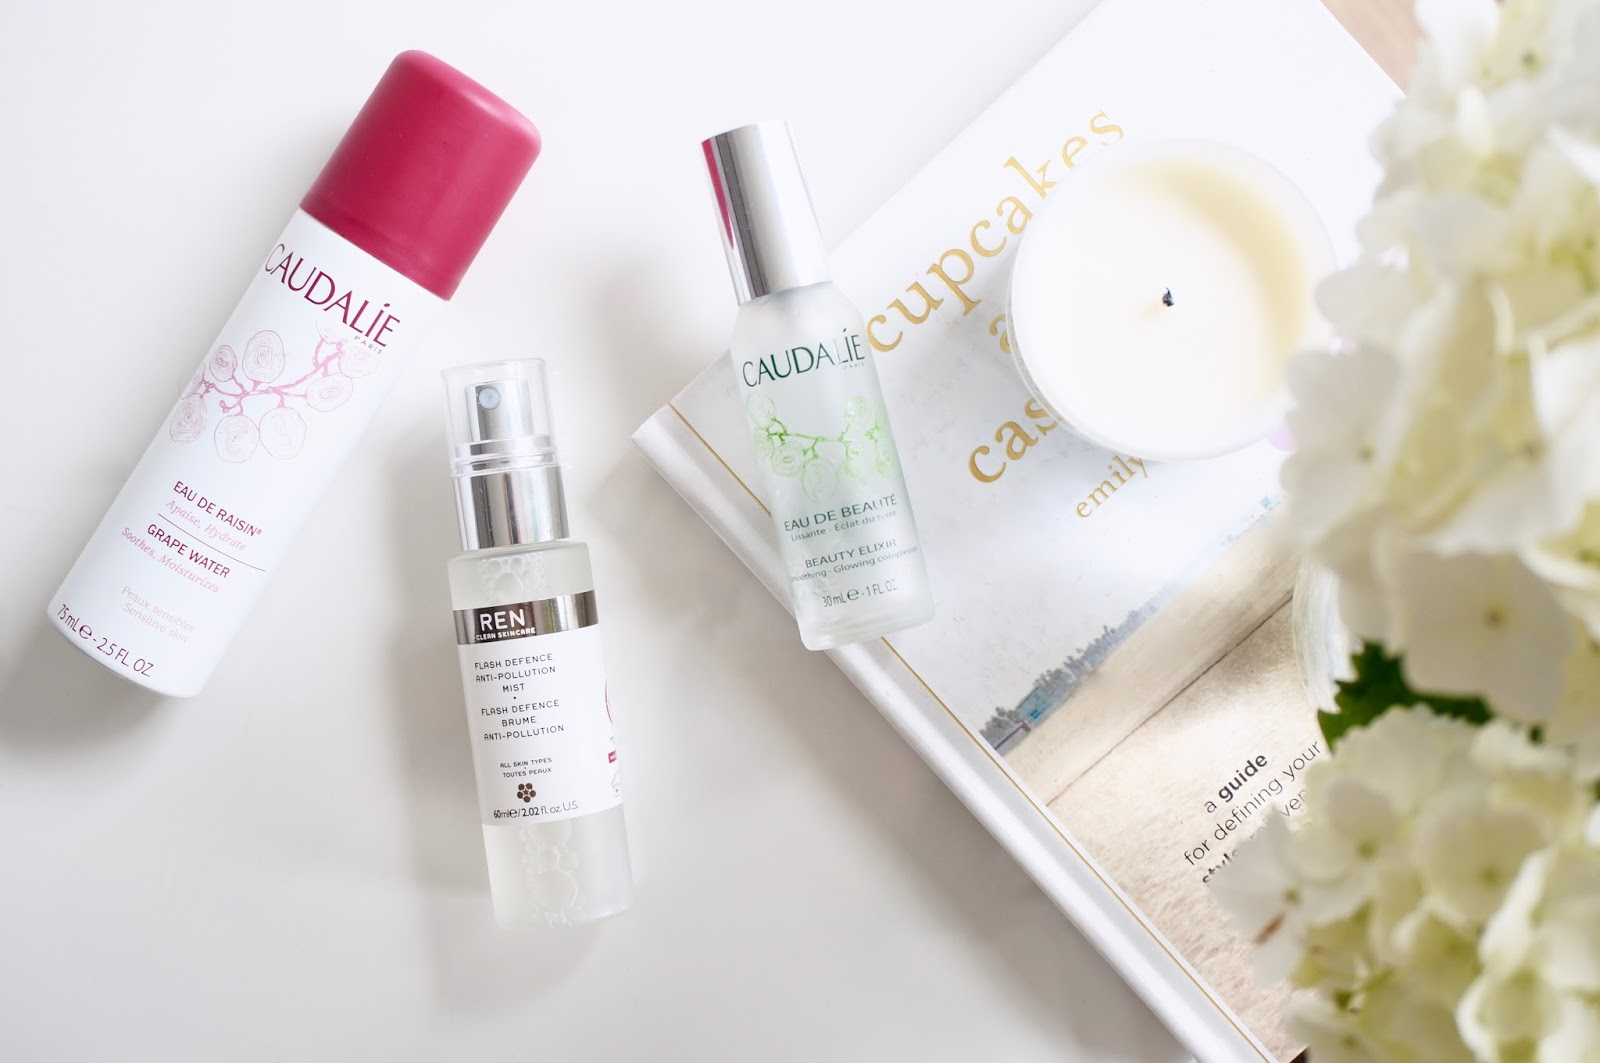 caudalie grape spray, ren flash defenc, beauty elixir